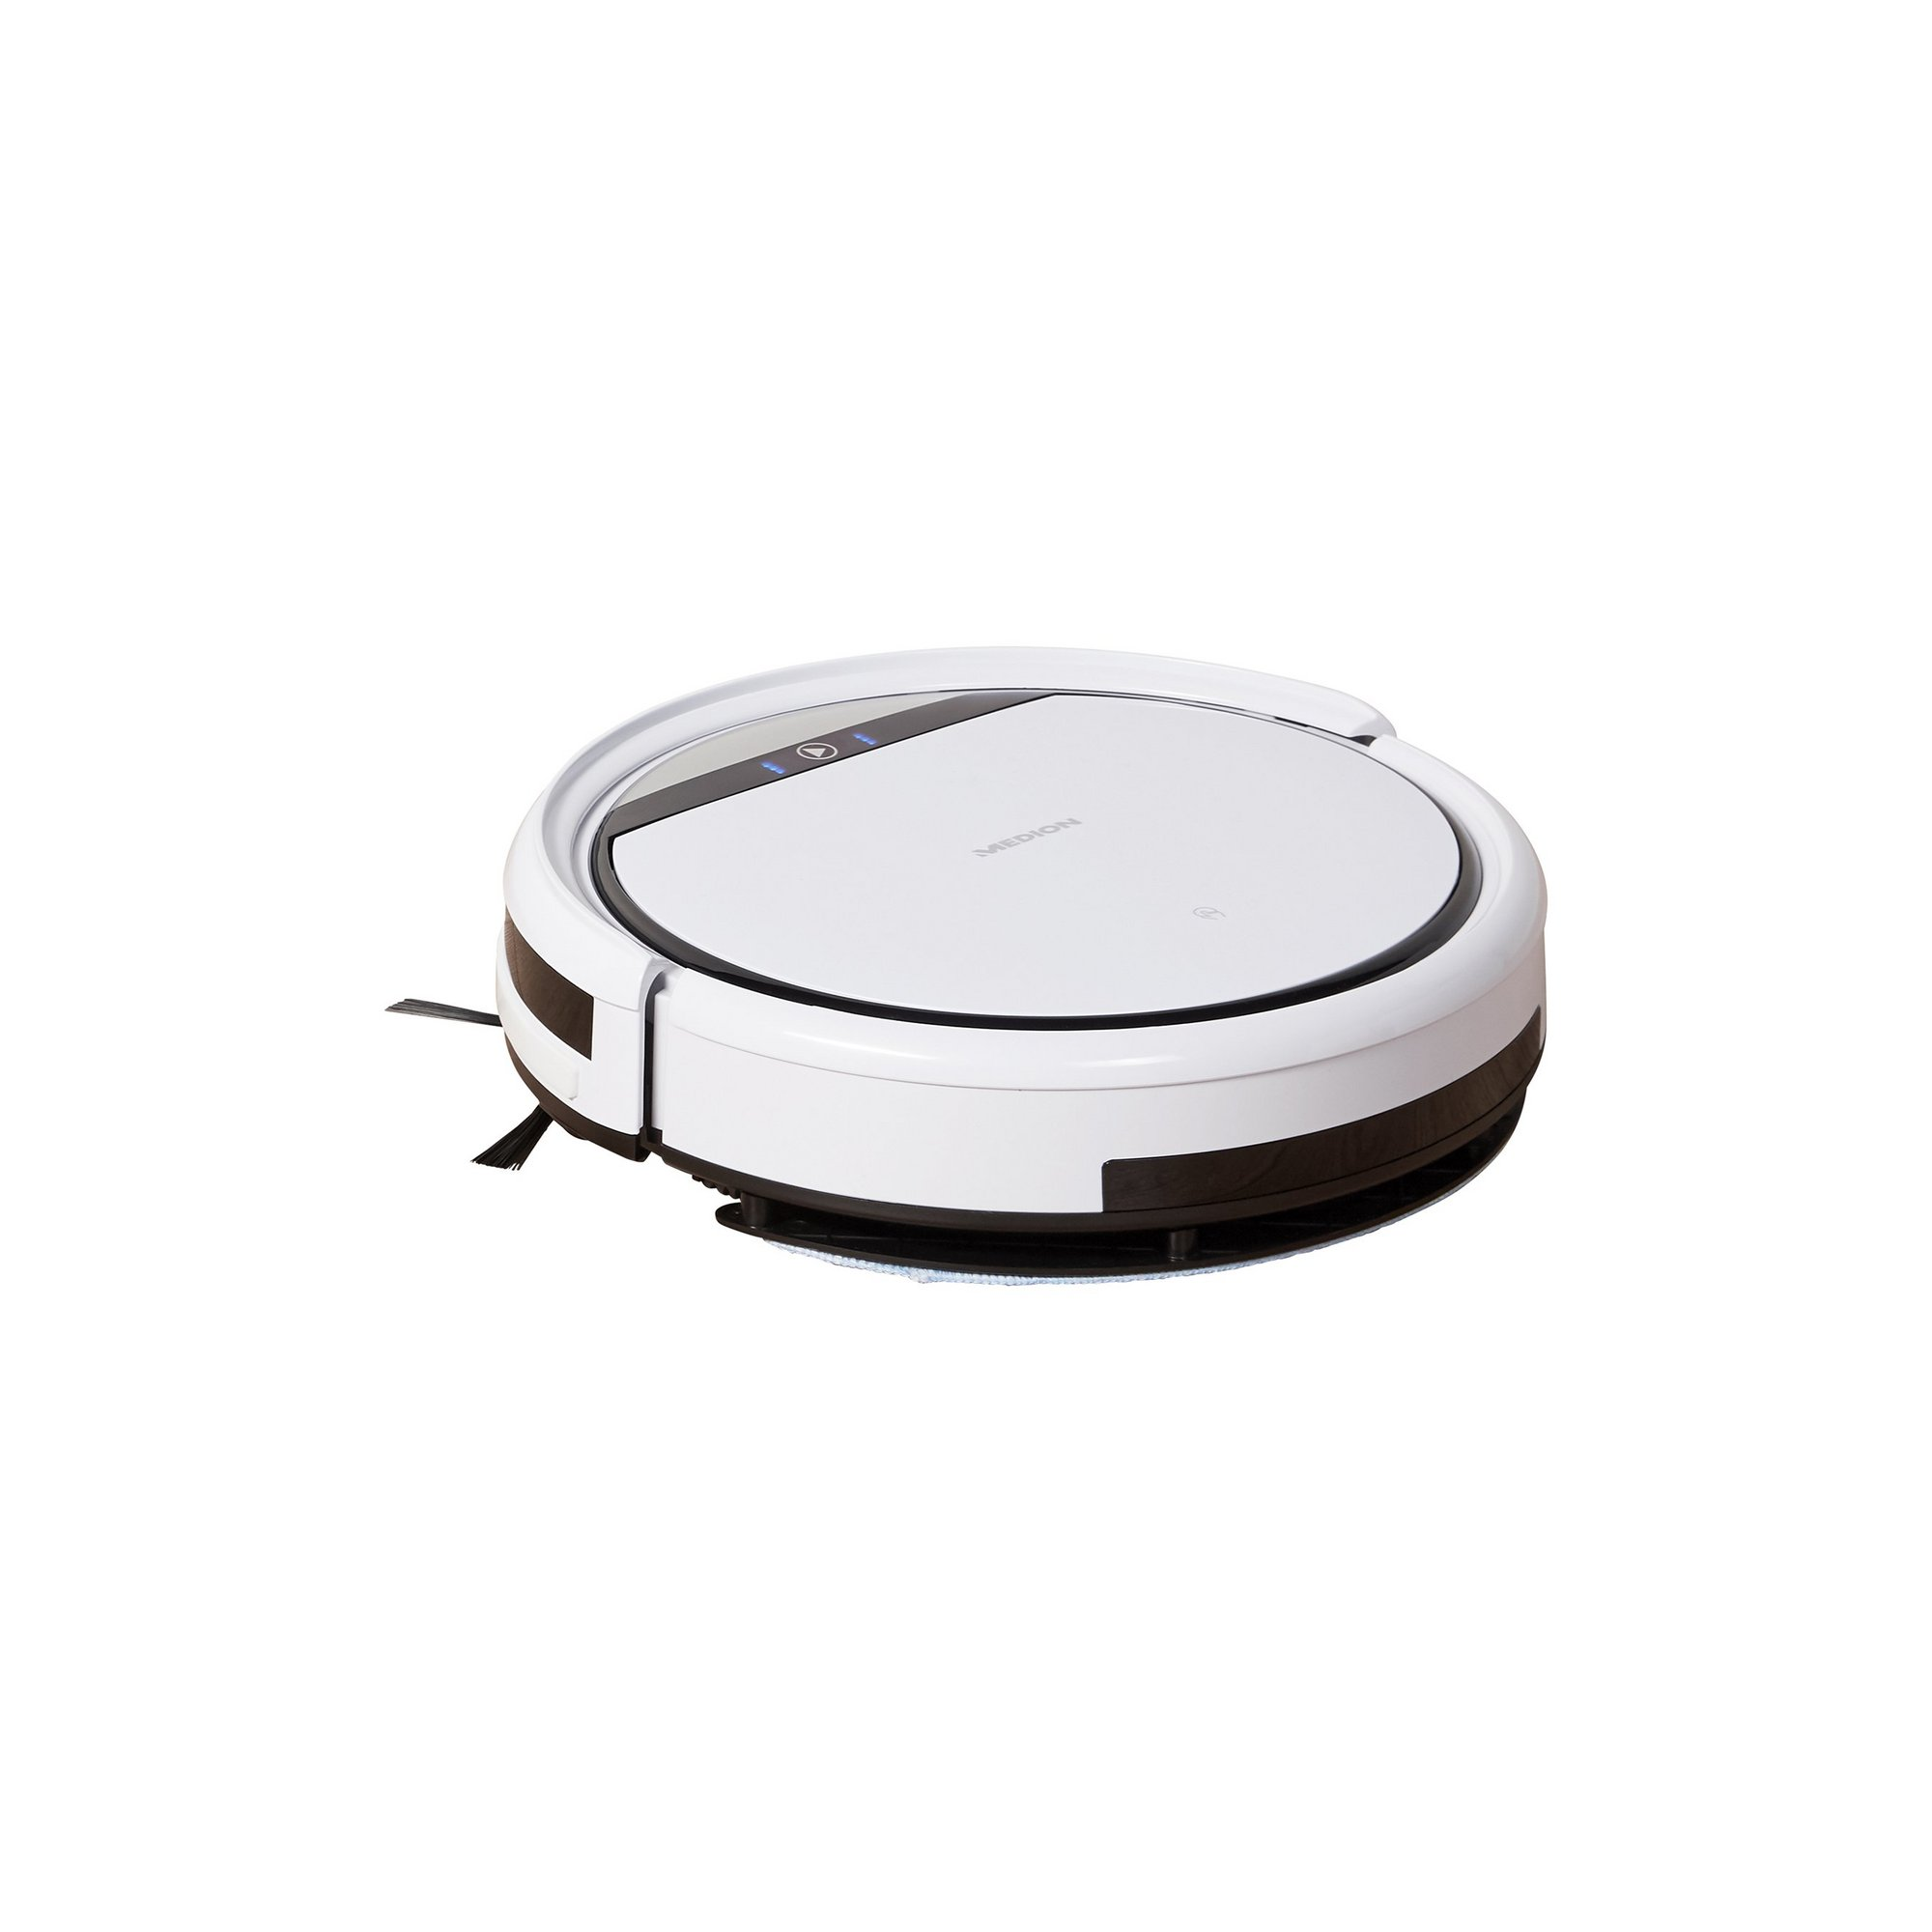 Image of Medion MD 19510 Robot Vacuum cleaner with Wet Mopping Function